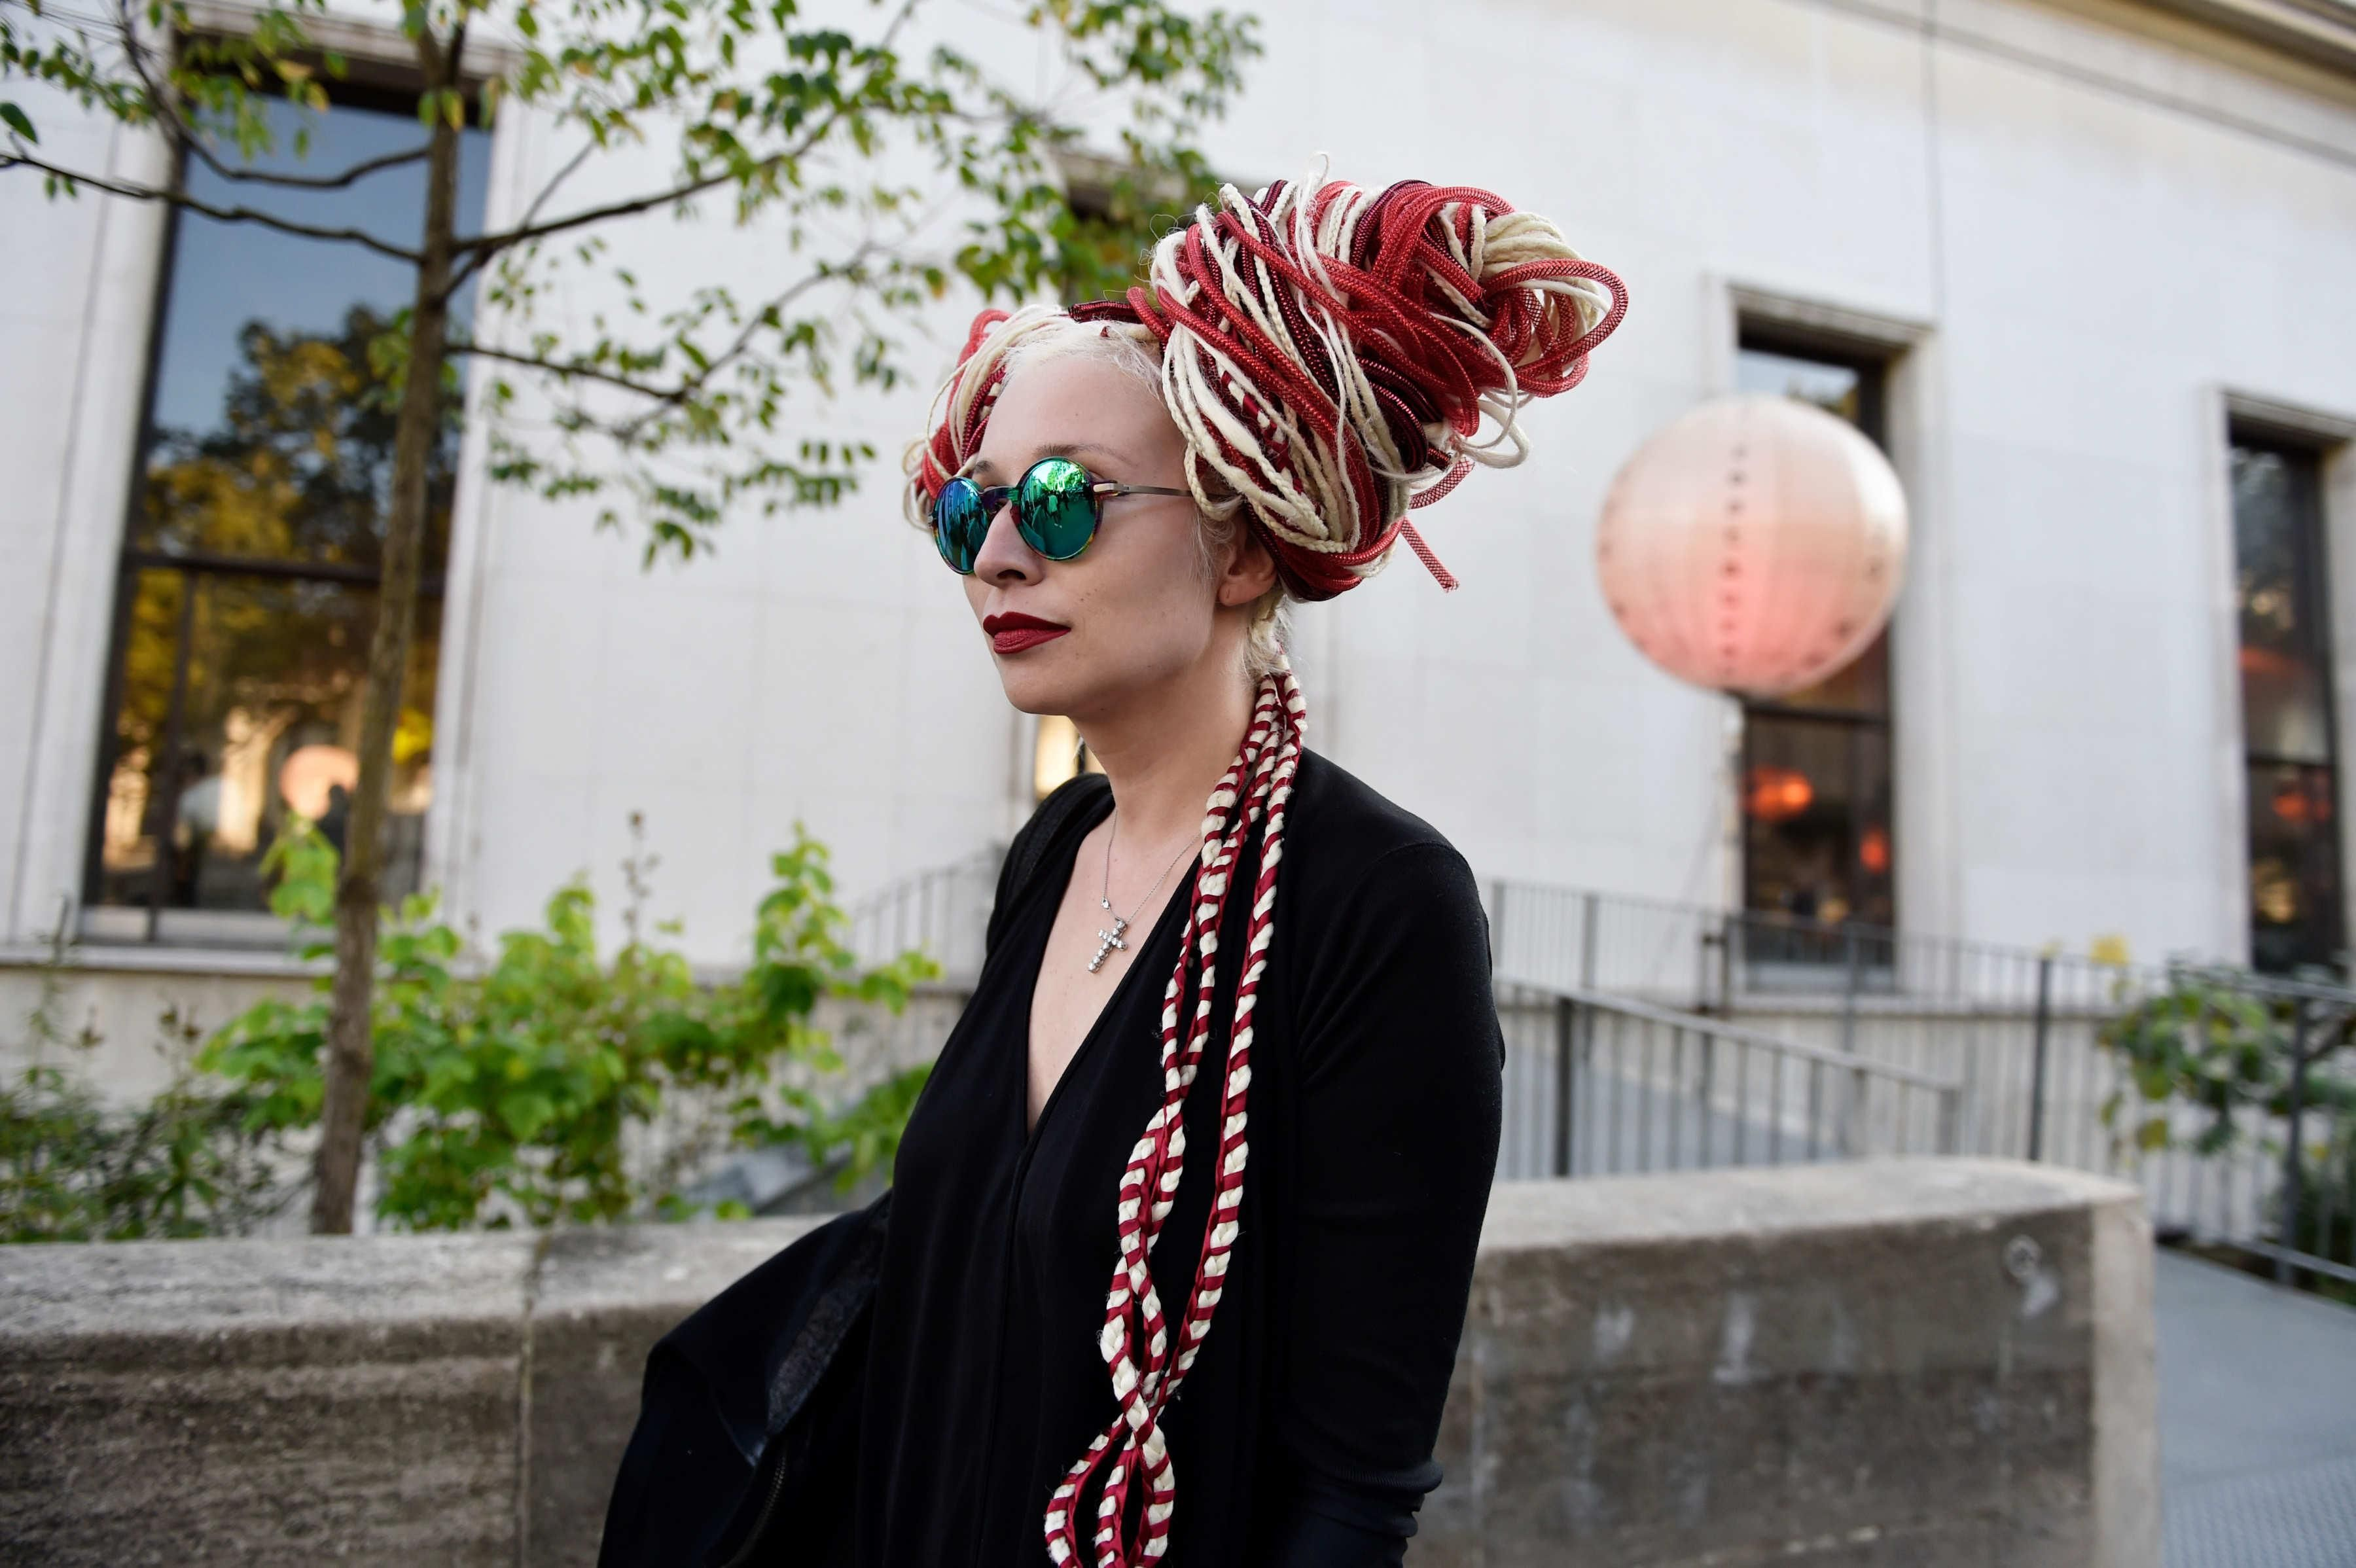 See All the Street Style From Paris Fashion Week: Natalya Bogacheva